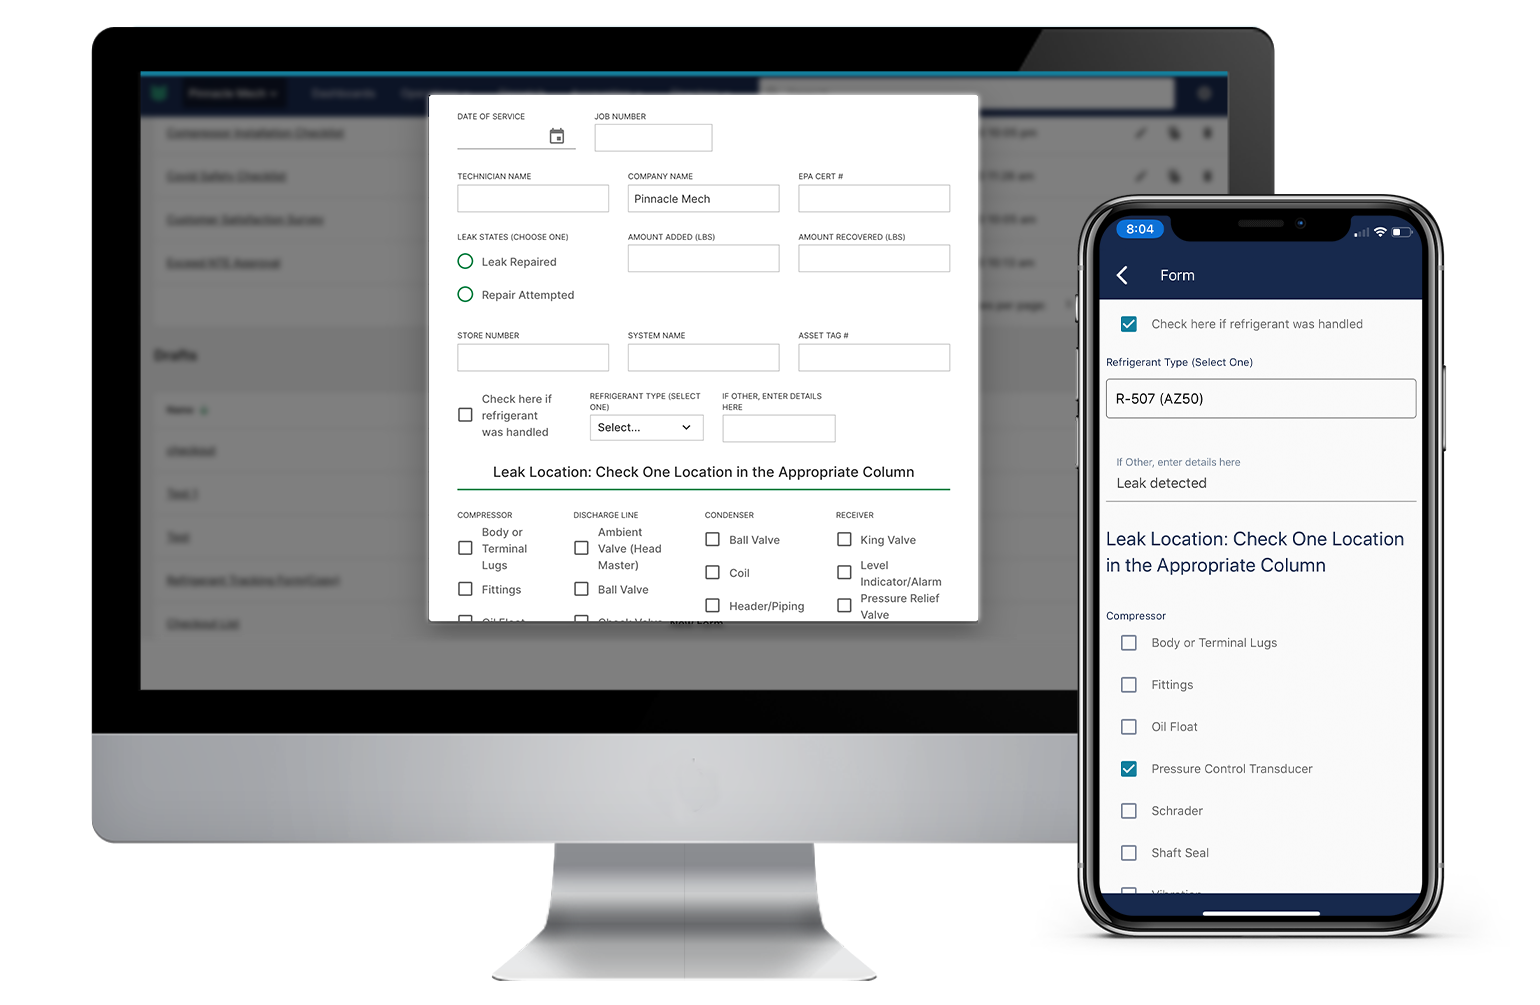 BuildOps Custom Forms: Create and customize forms, then attach to a job or assign to your technicians. Forms enforce quality, consistency, and proper documentation. And they can be used for anything you want, from COVID-19 Safety to Refrigerant Tracking.